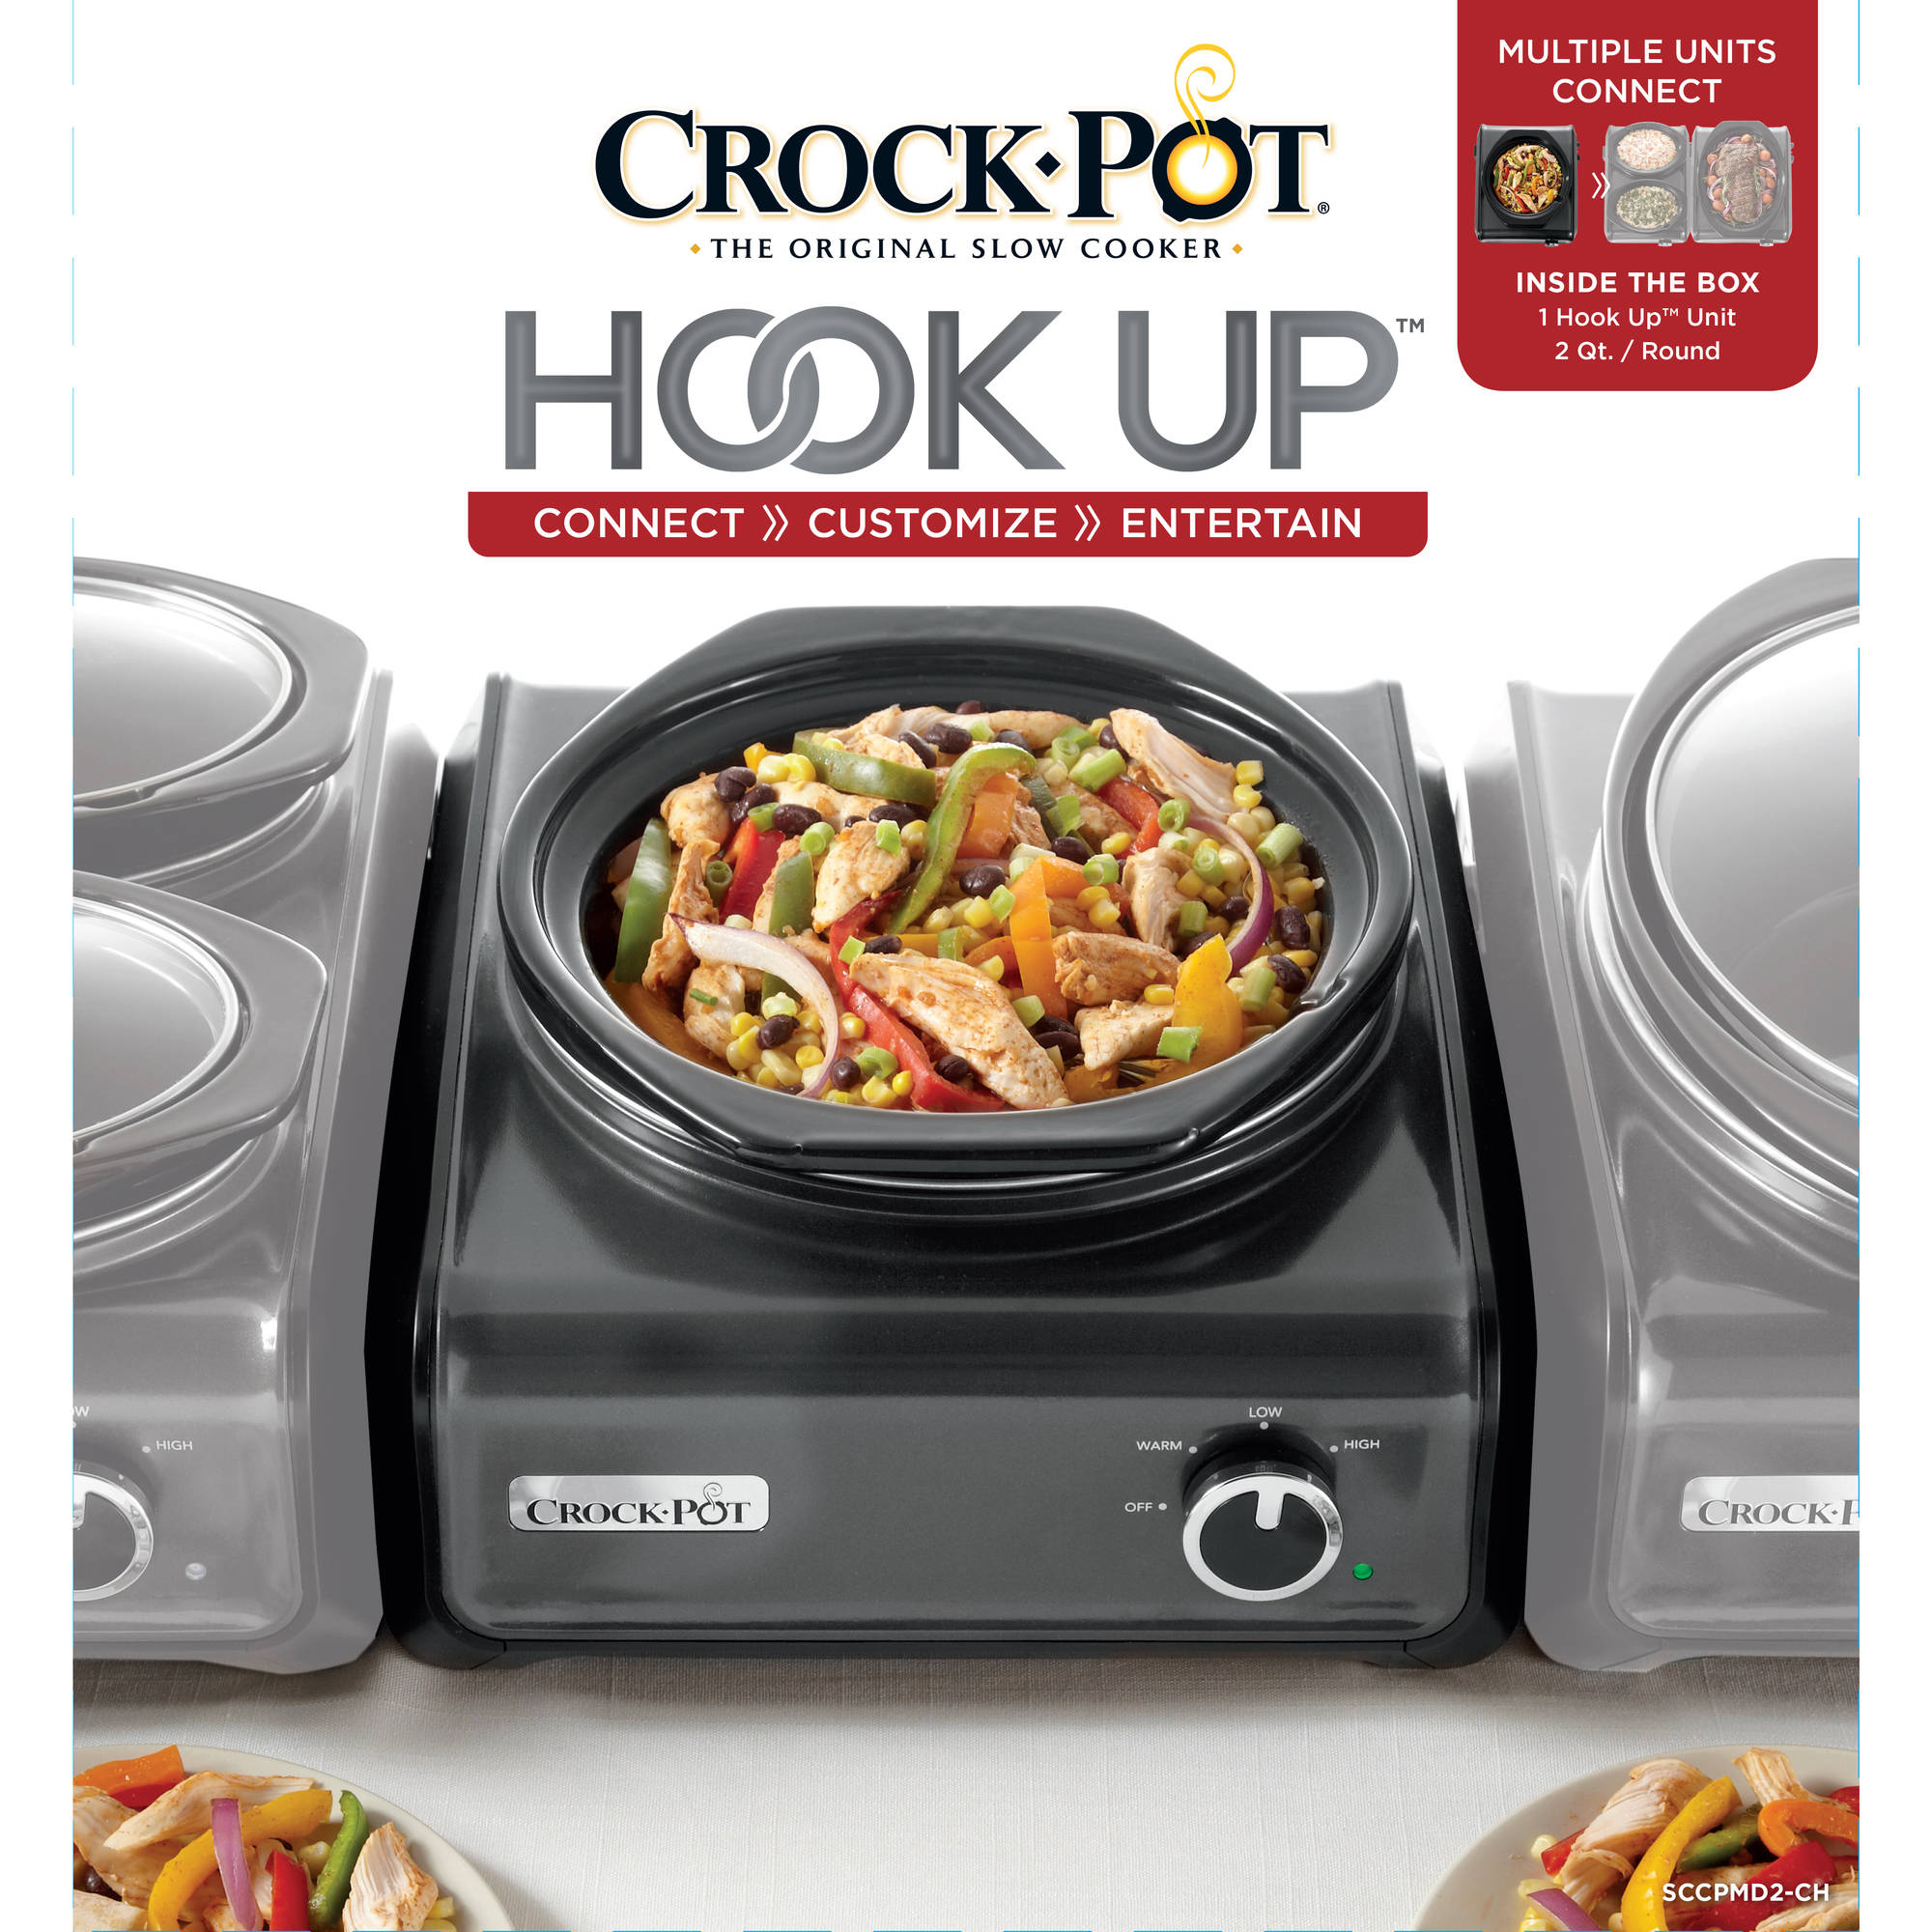 Crock Pot Hook Up 2 Quart Connectable Entertaining System   Walmart.com